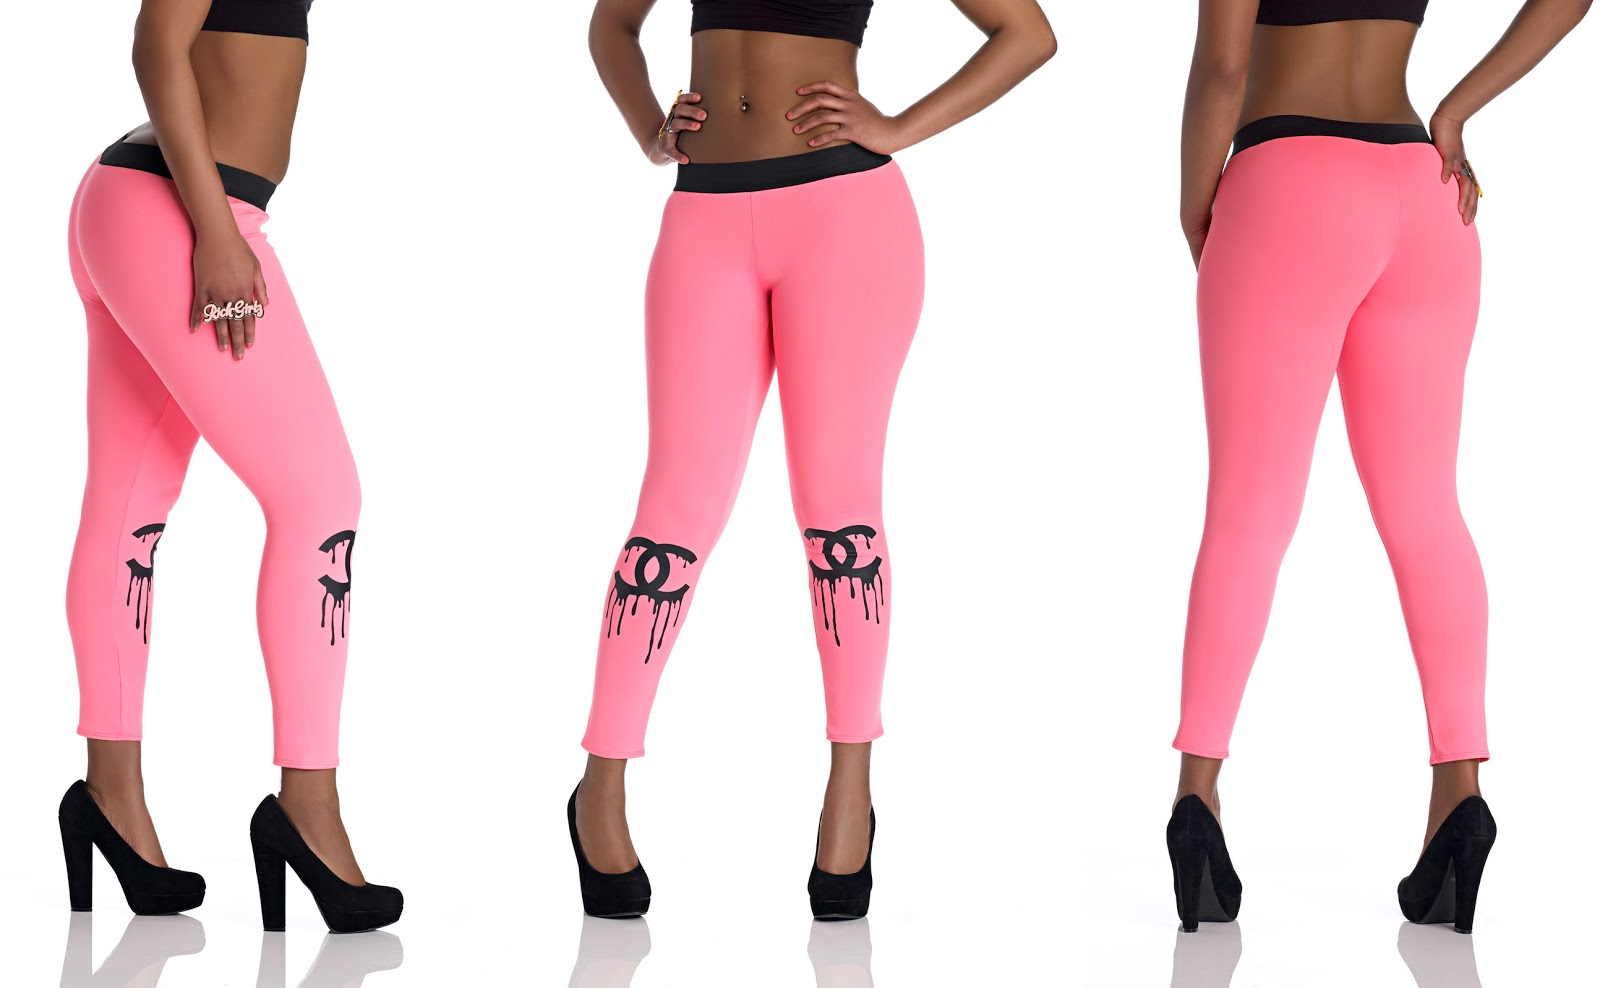 chanel leggings. of leggings that will really make you stand out, have a bold color that\u0027s guaranteed to turn heads and create long lasting impression, the chanel